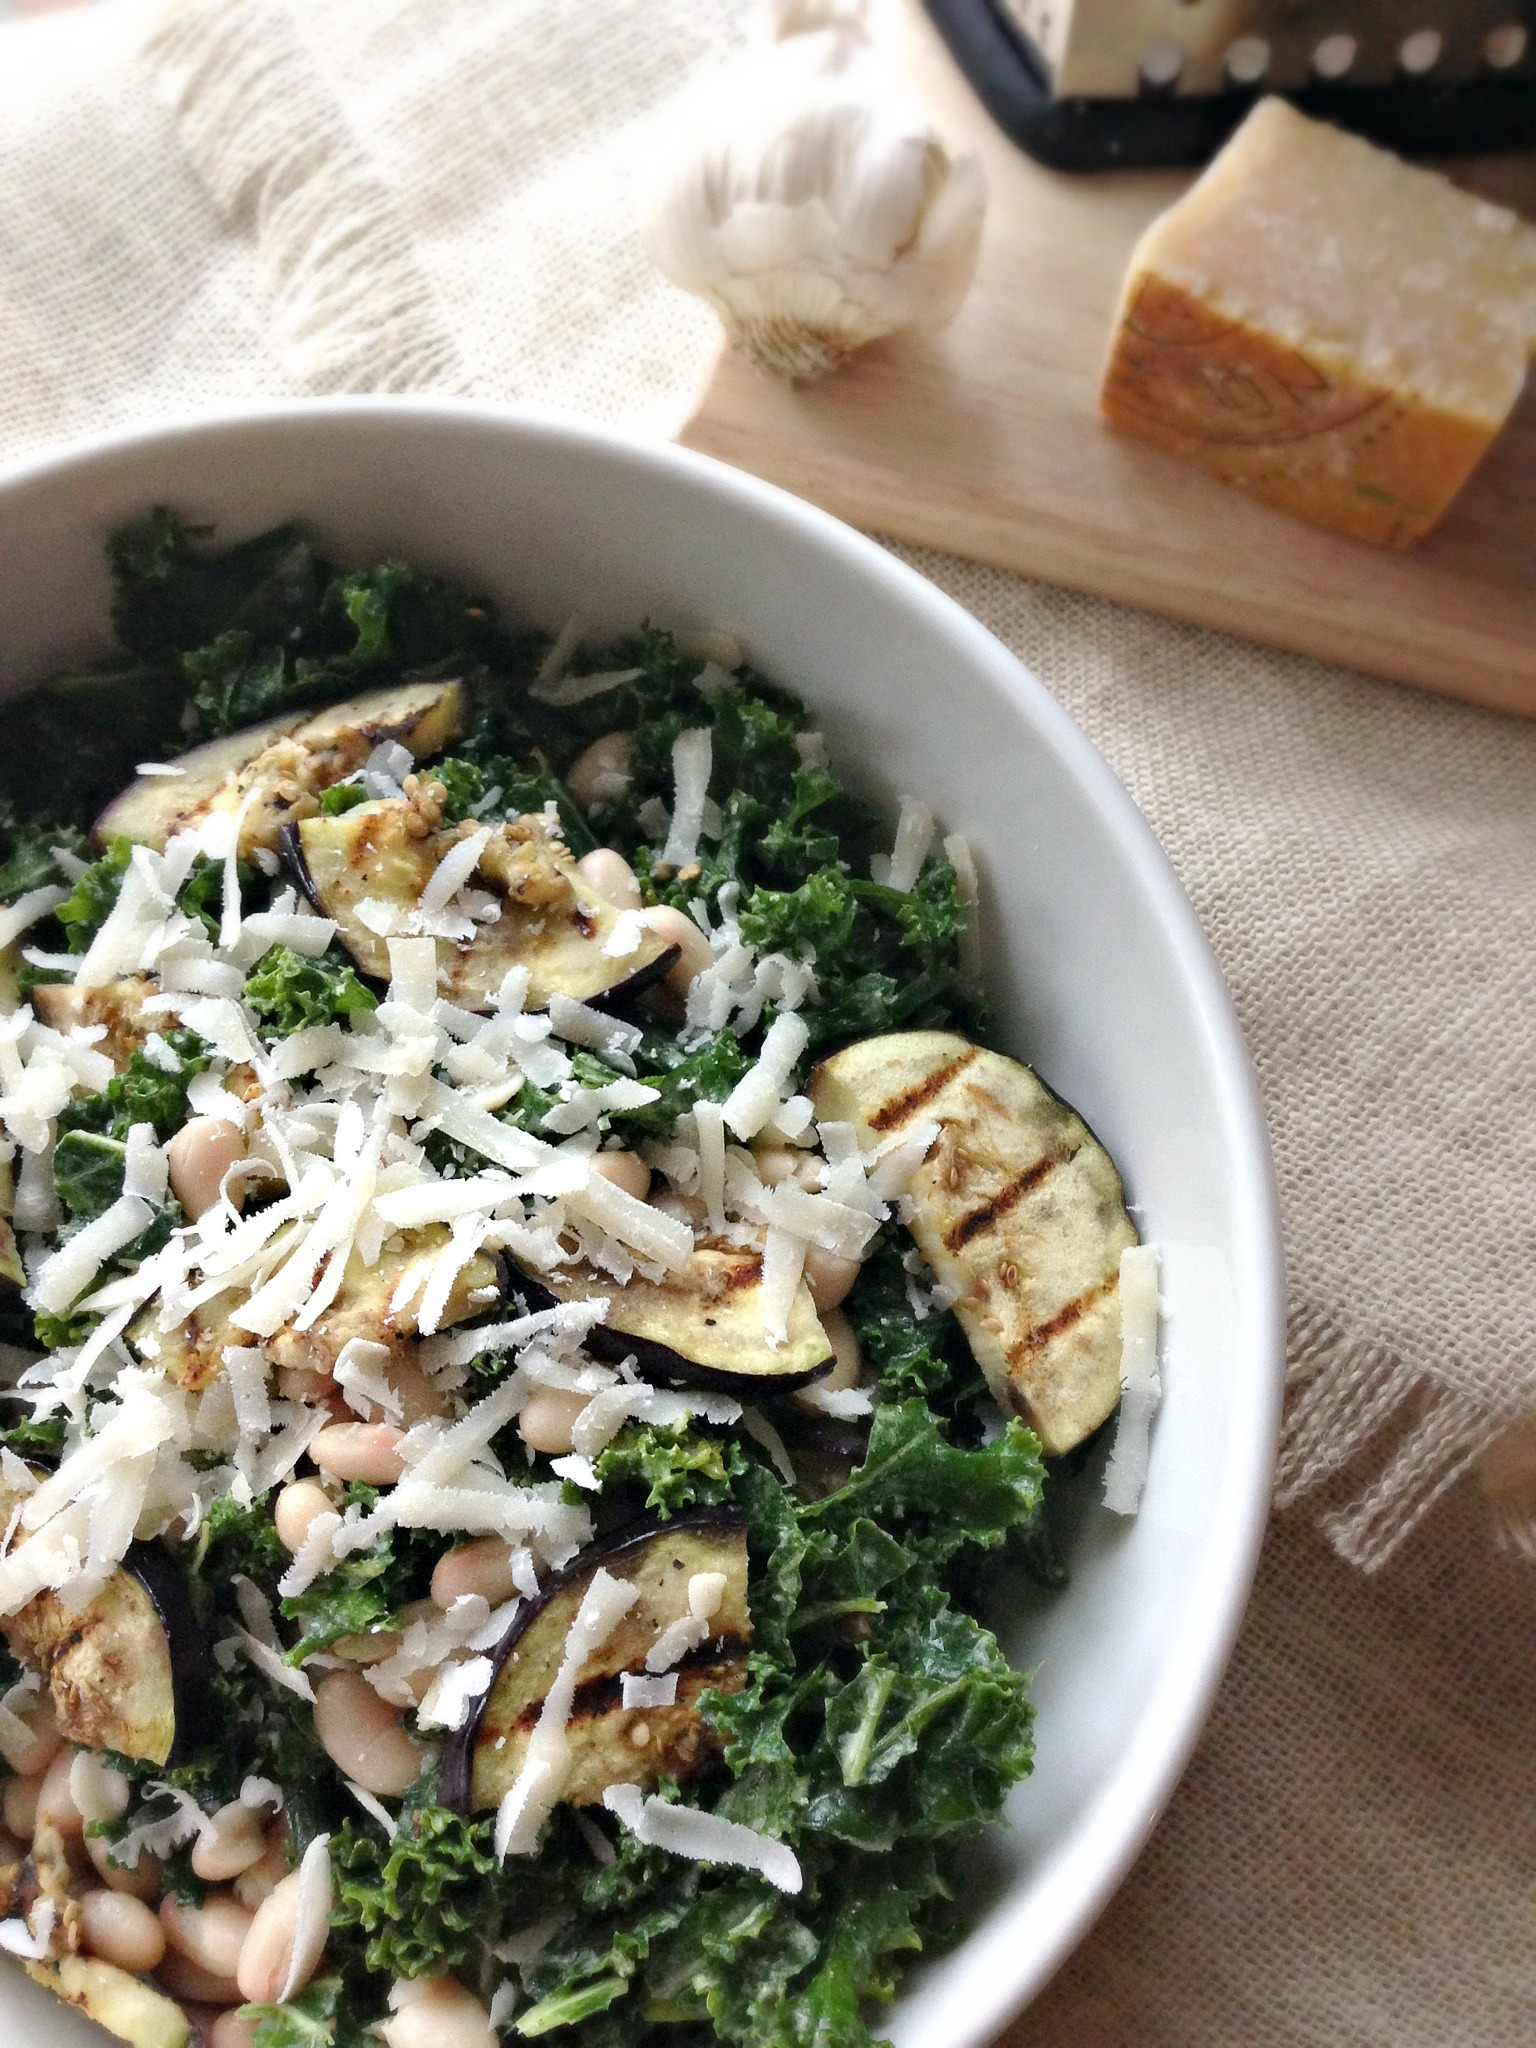 Grilled eggplant and cannellini beans tossed in garlicky kale topped ...